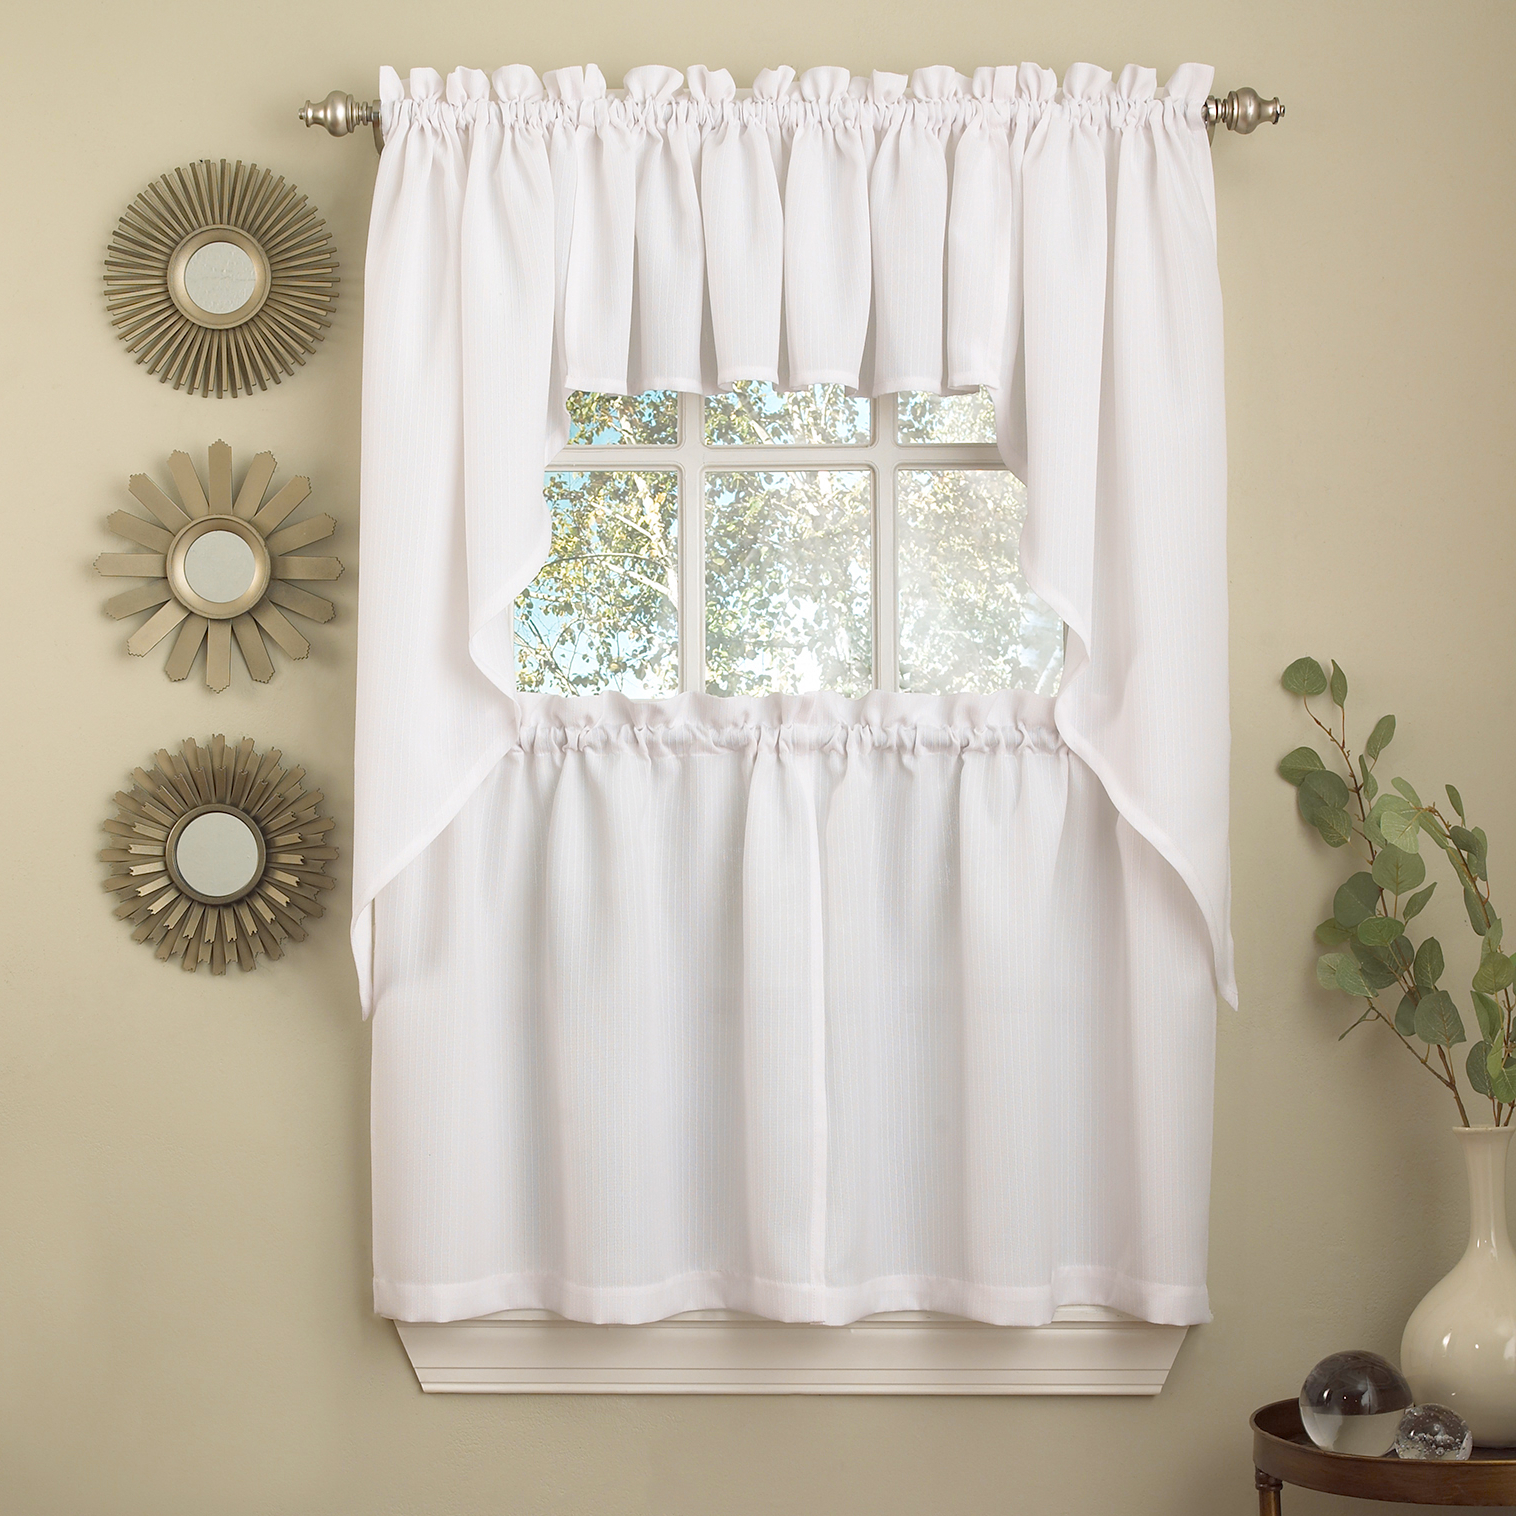 Details About White Solid Opaque Ribcord Kitchen Curtains – Choice Of Tiers Valance Or Swag Regarding Well Known Semi Sheer Rod Pocket Kitchen Curtain Valance And Tiers Sets (View 13 of 20)